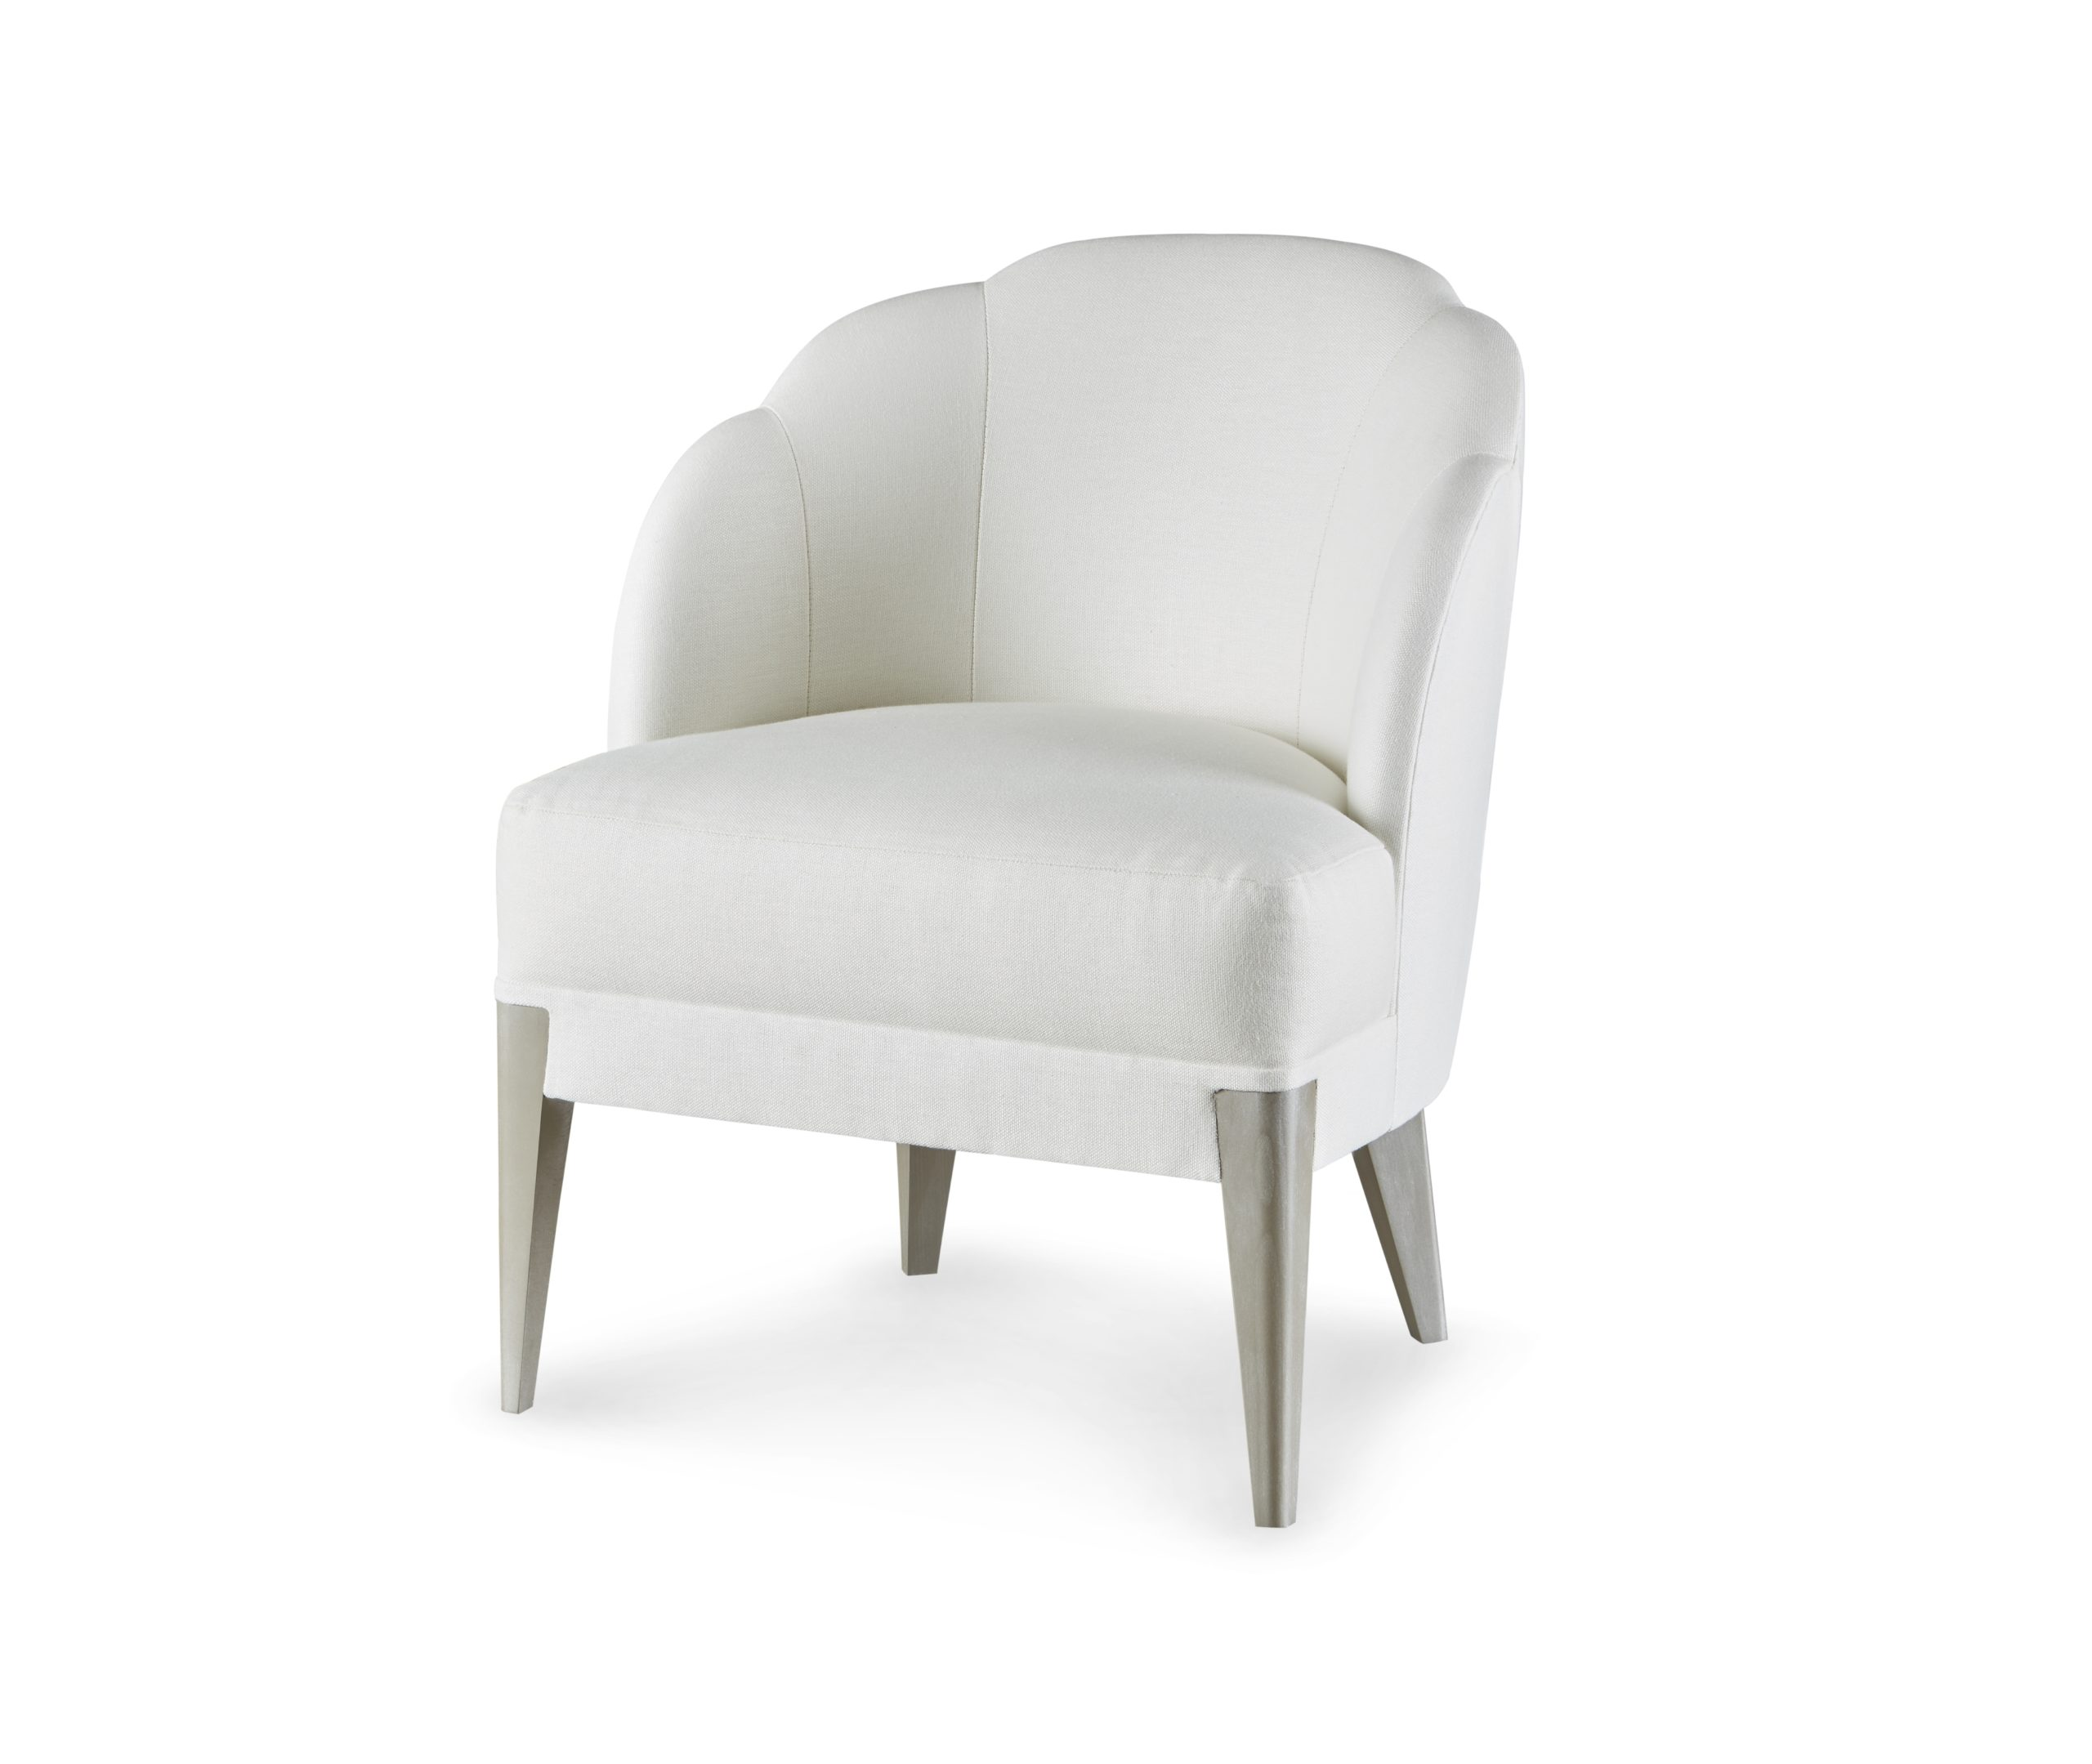 Baker_products_WNWN_sophie_chair_BAU3306c_FRONT_3QRT-scaled-1